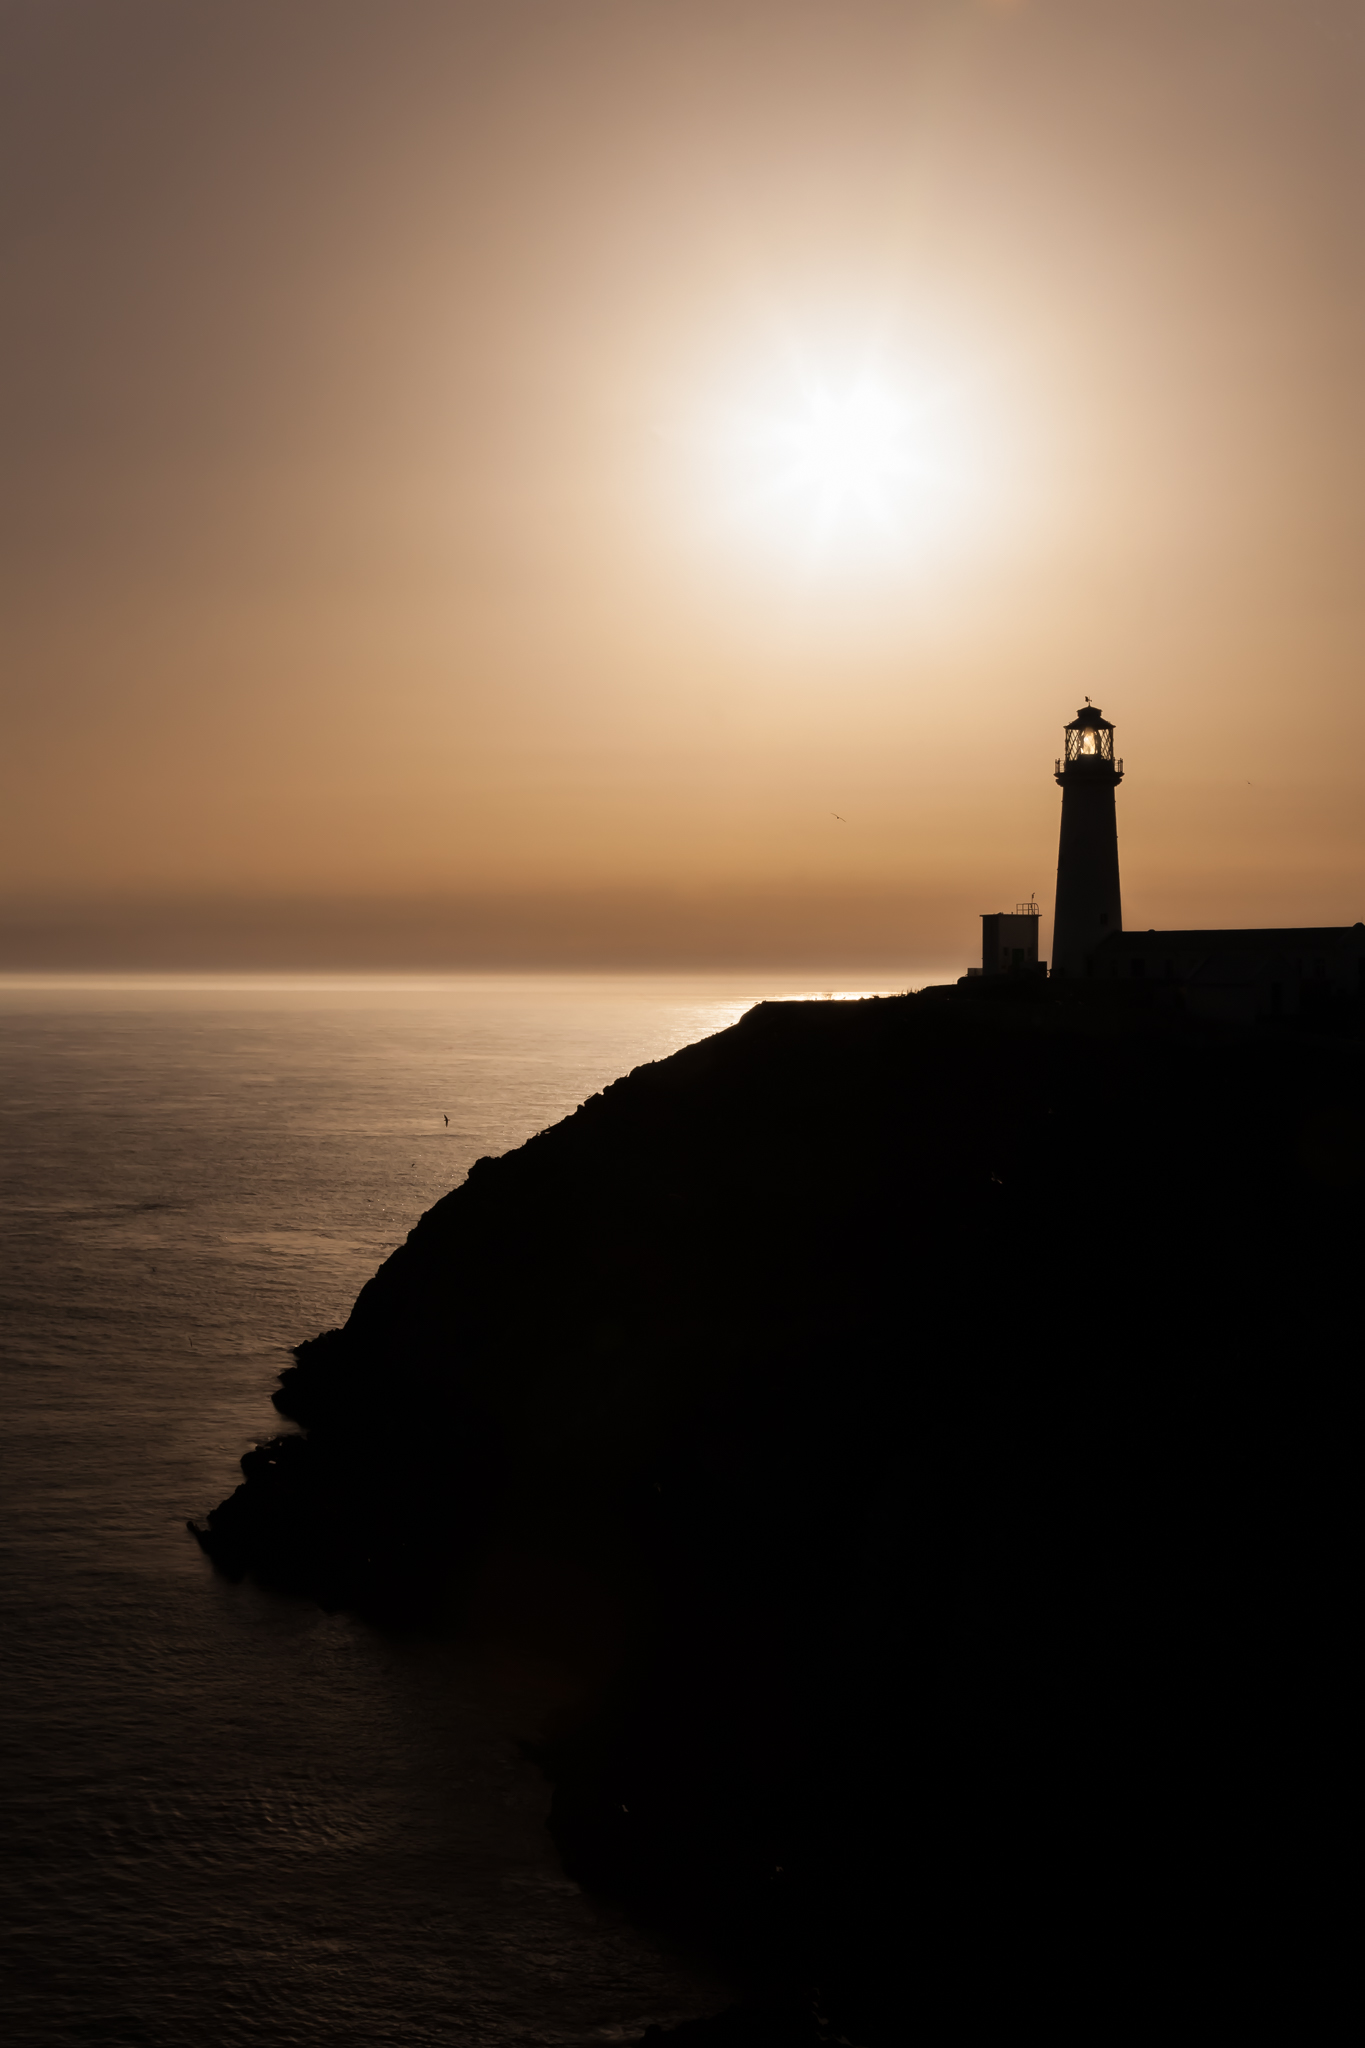 The sun goes down off Anglesey in North Wales, silhouetting South Stack lighthouse against the horizon.